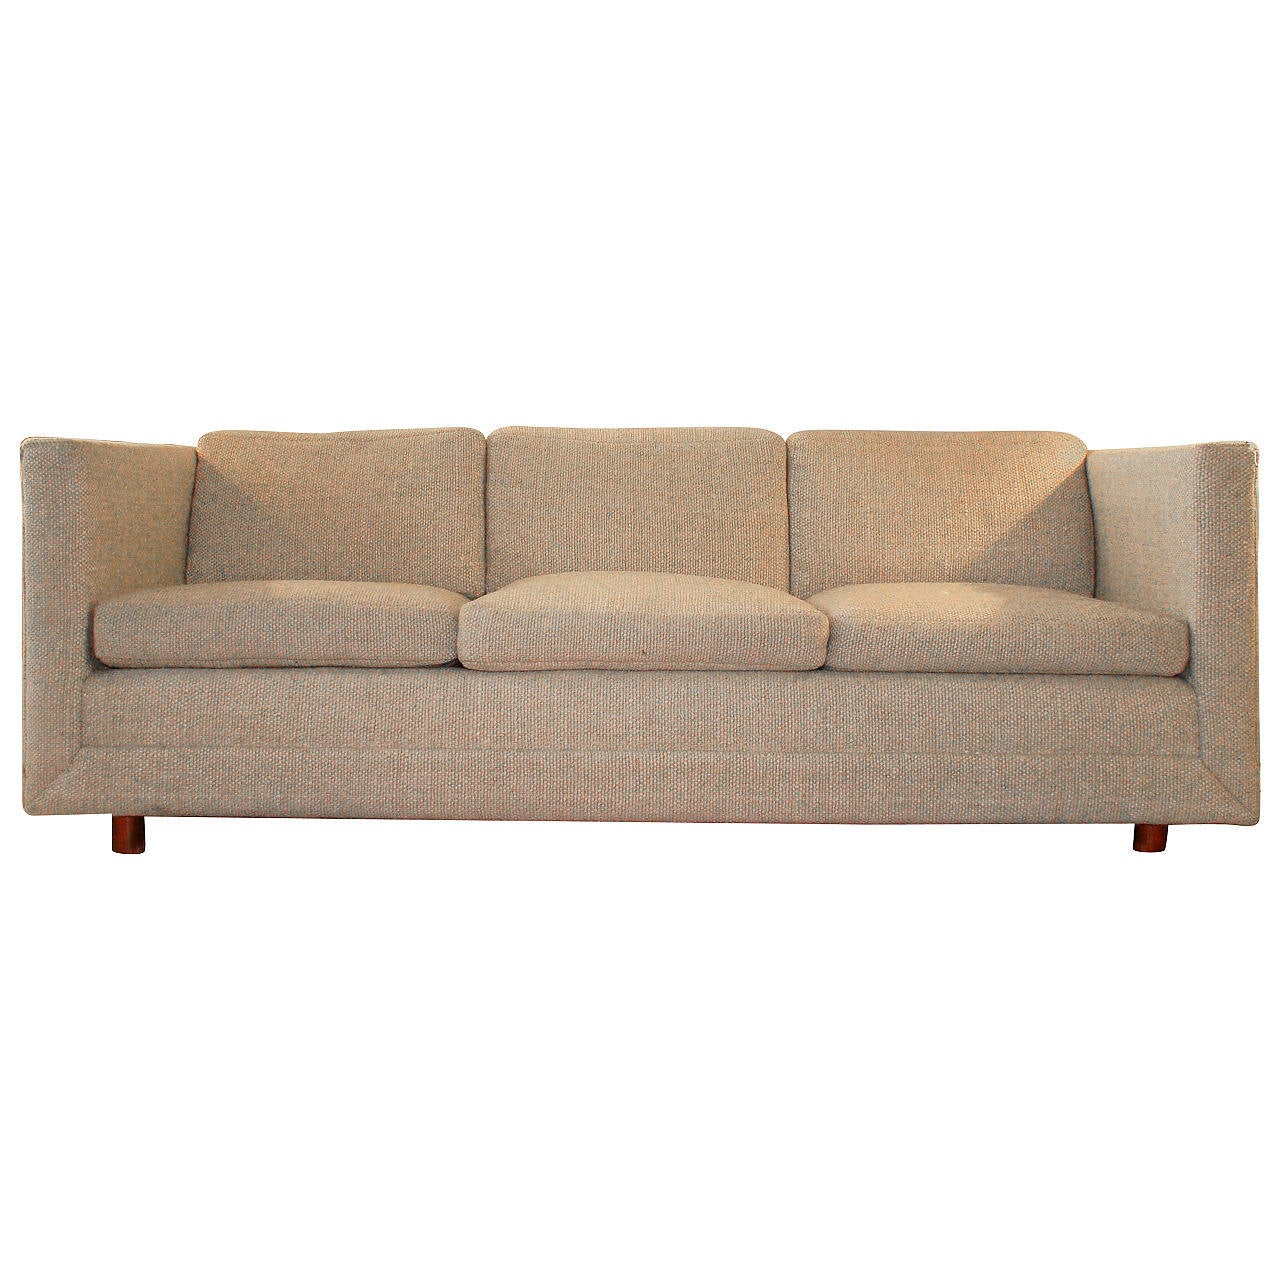 Ward Bennett Sofa For Brickel Associates 1